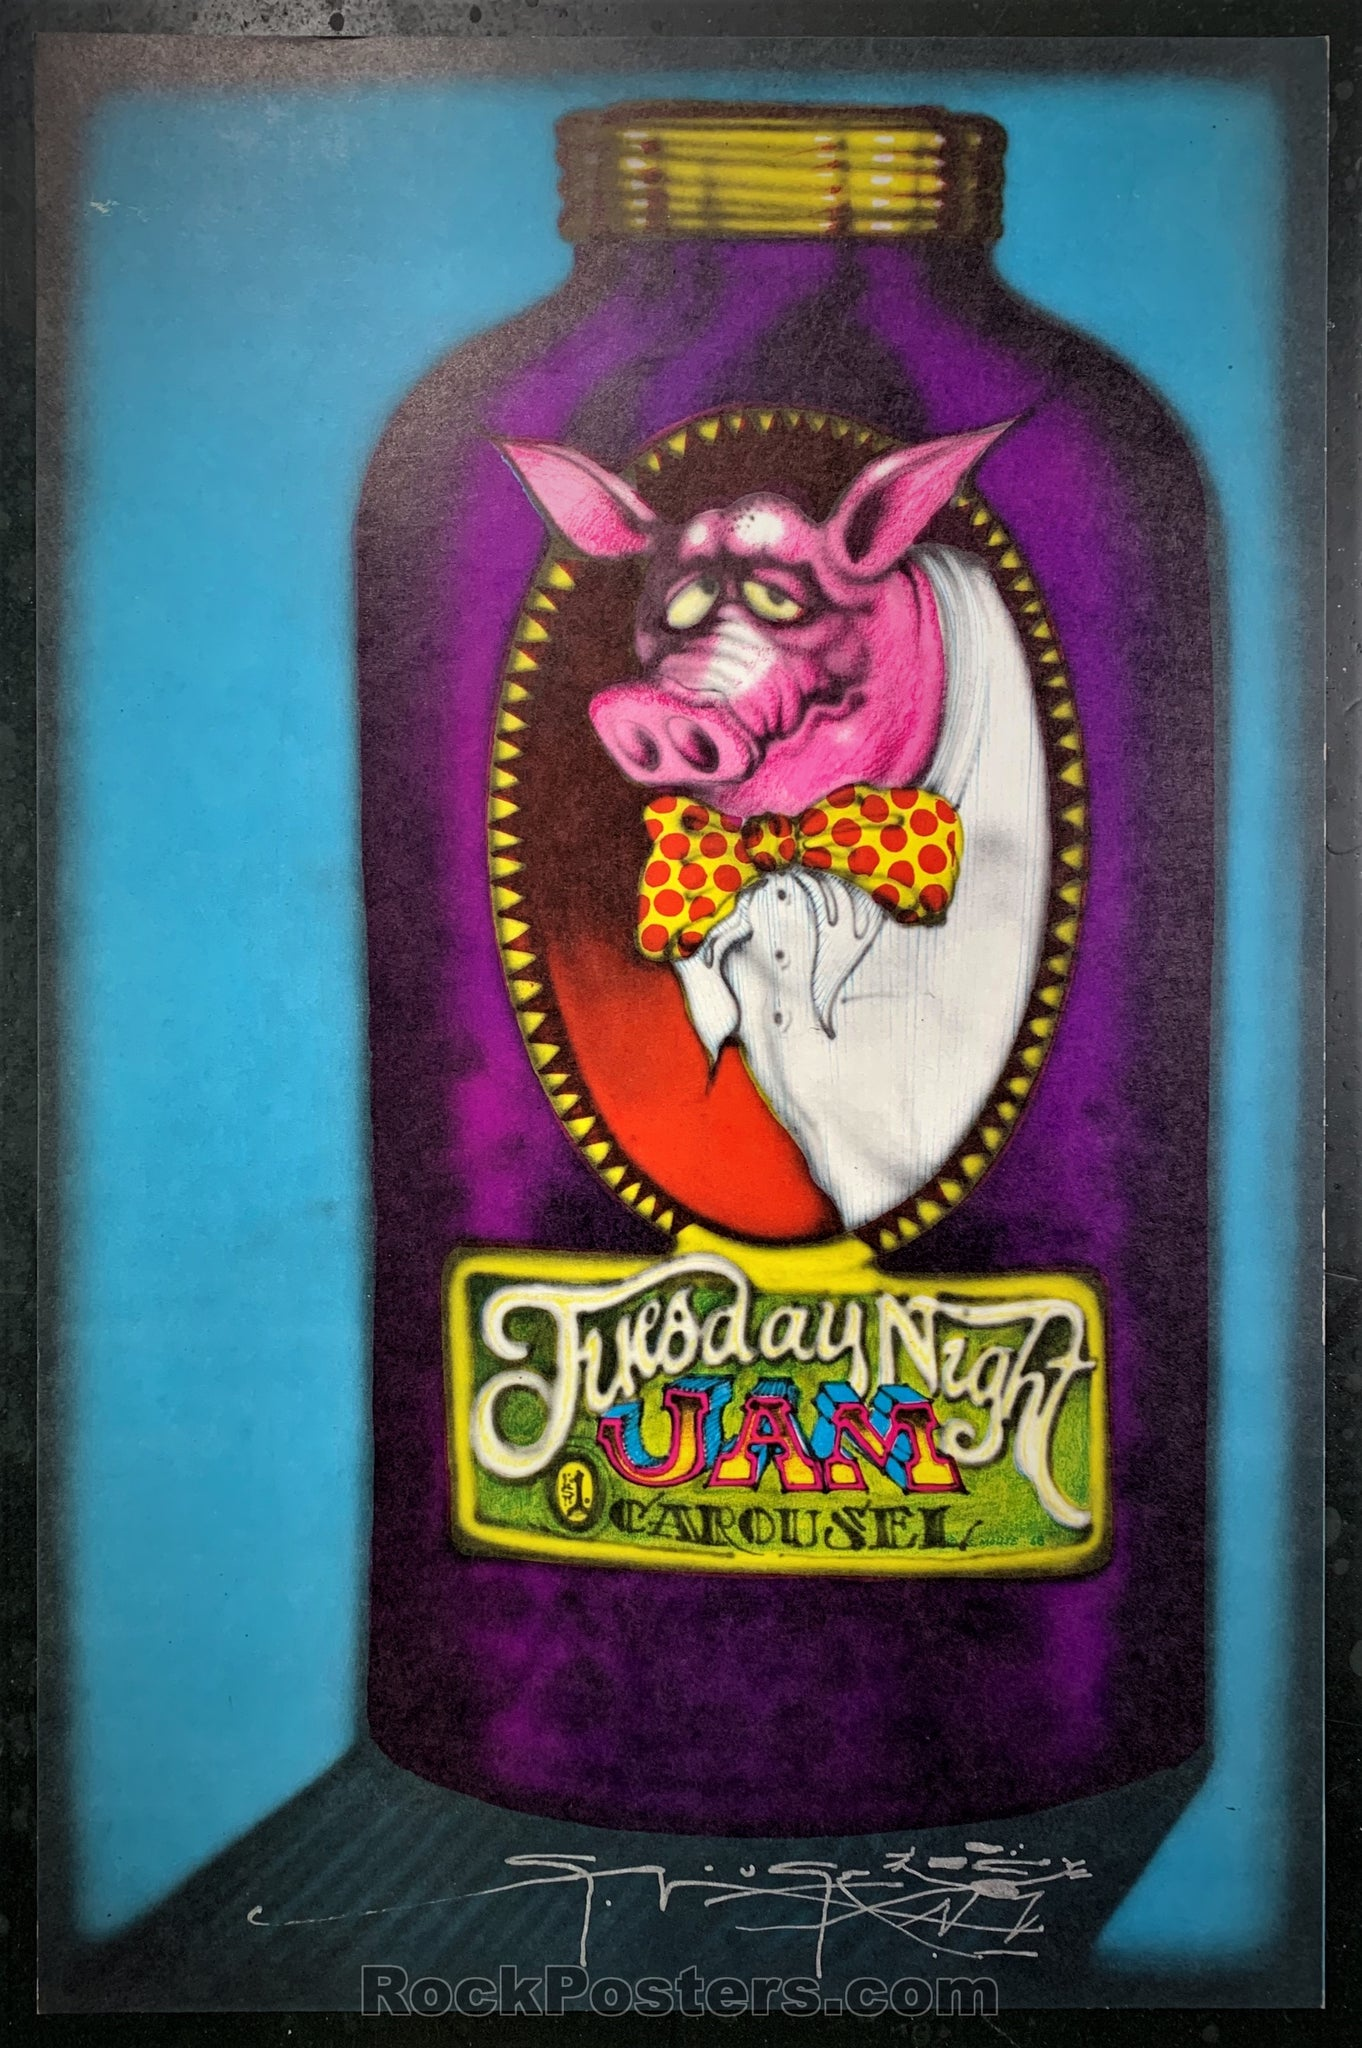 AUCTION - AOR-2.170 - Tuesday Night Jam 1968 Poster - Stanley Mouse Signed - Carousel Ballroom - Near Mint Minus